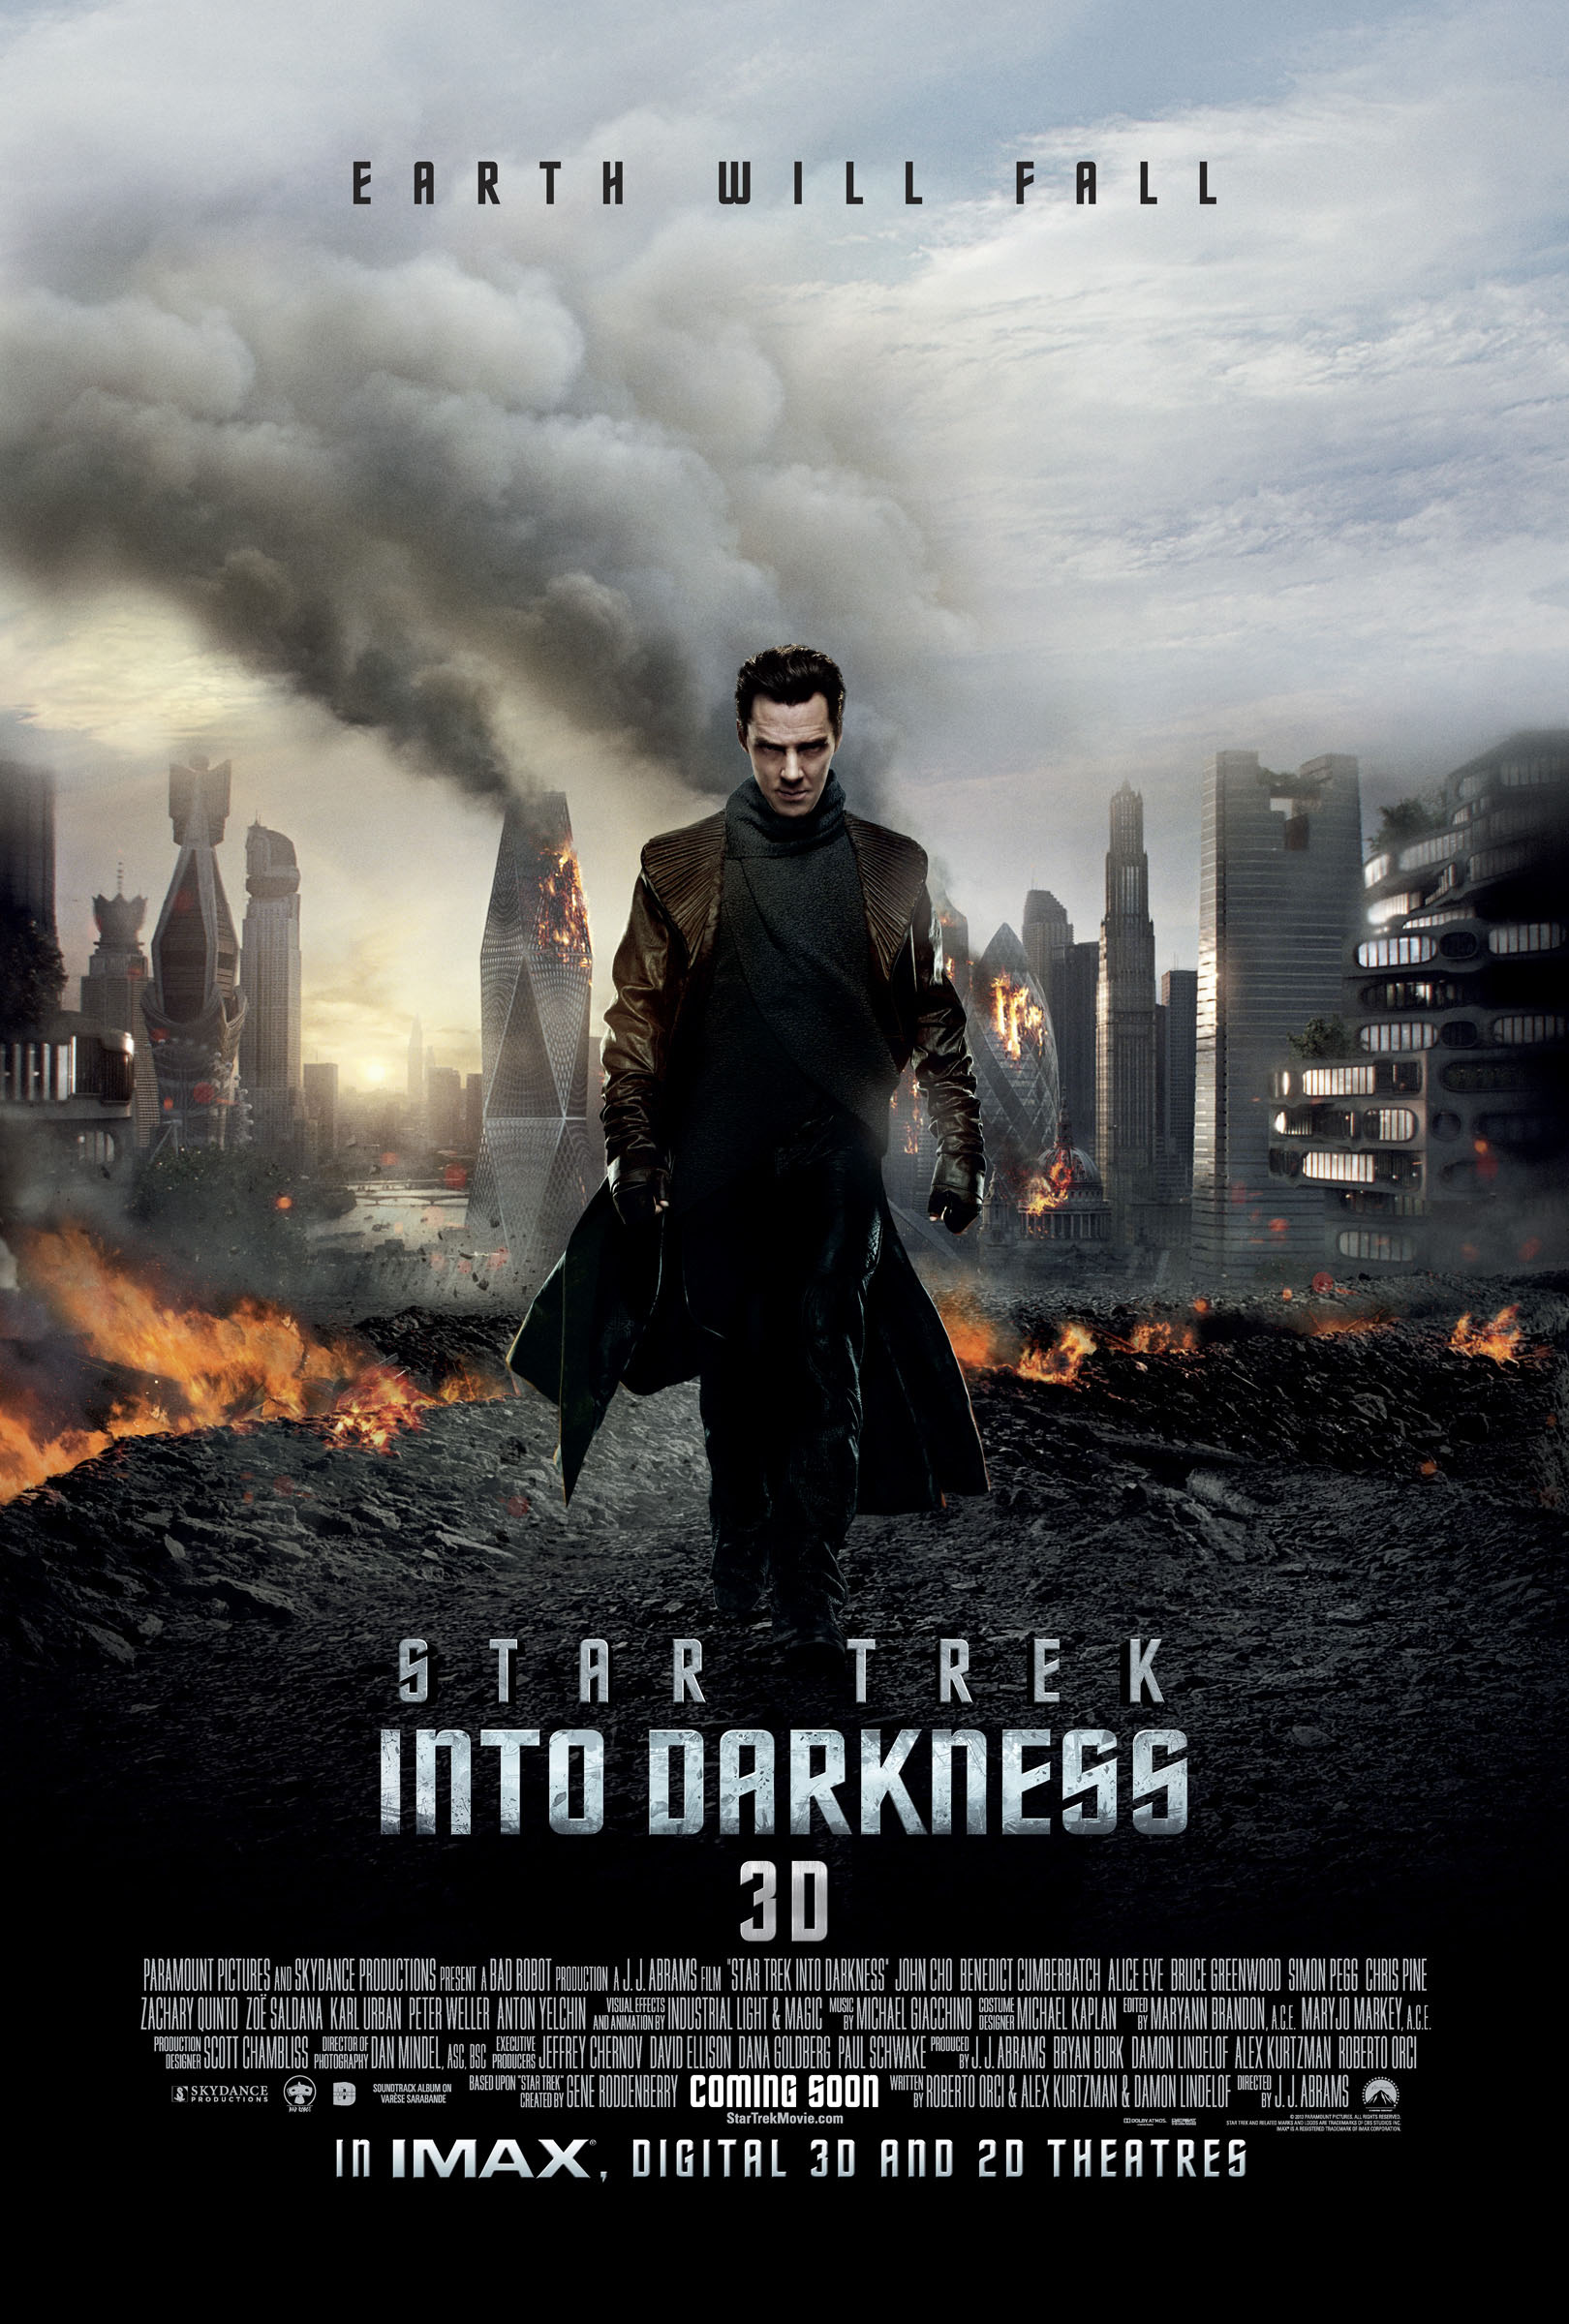 Star Trek Into Darkness 3d poster with Benedict Cumberbatch - Earth Will Fall